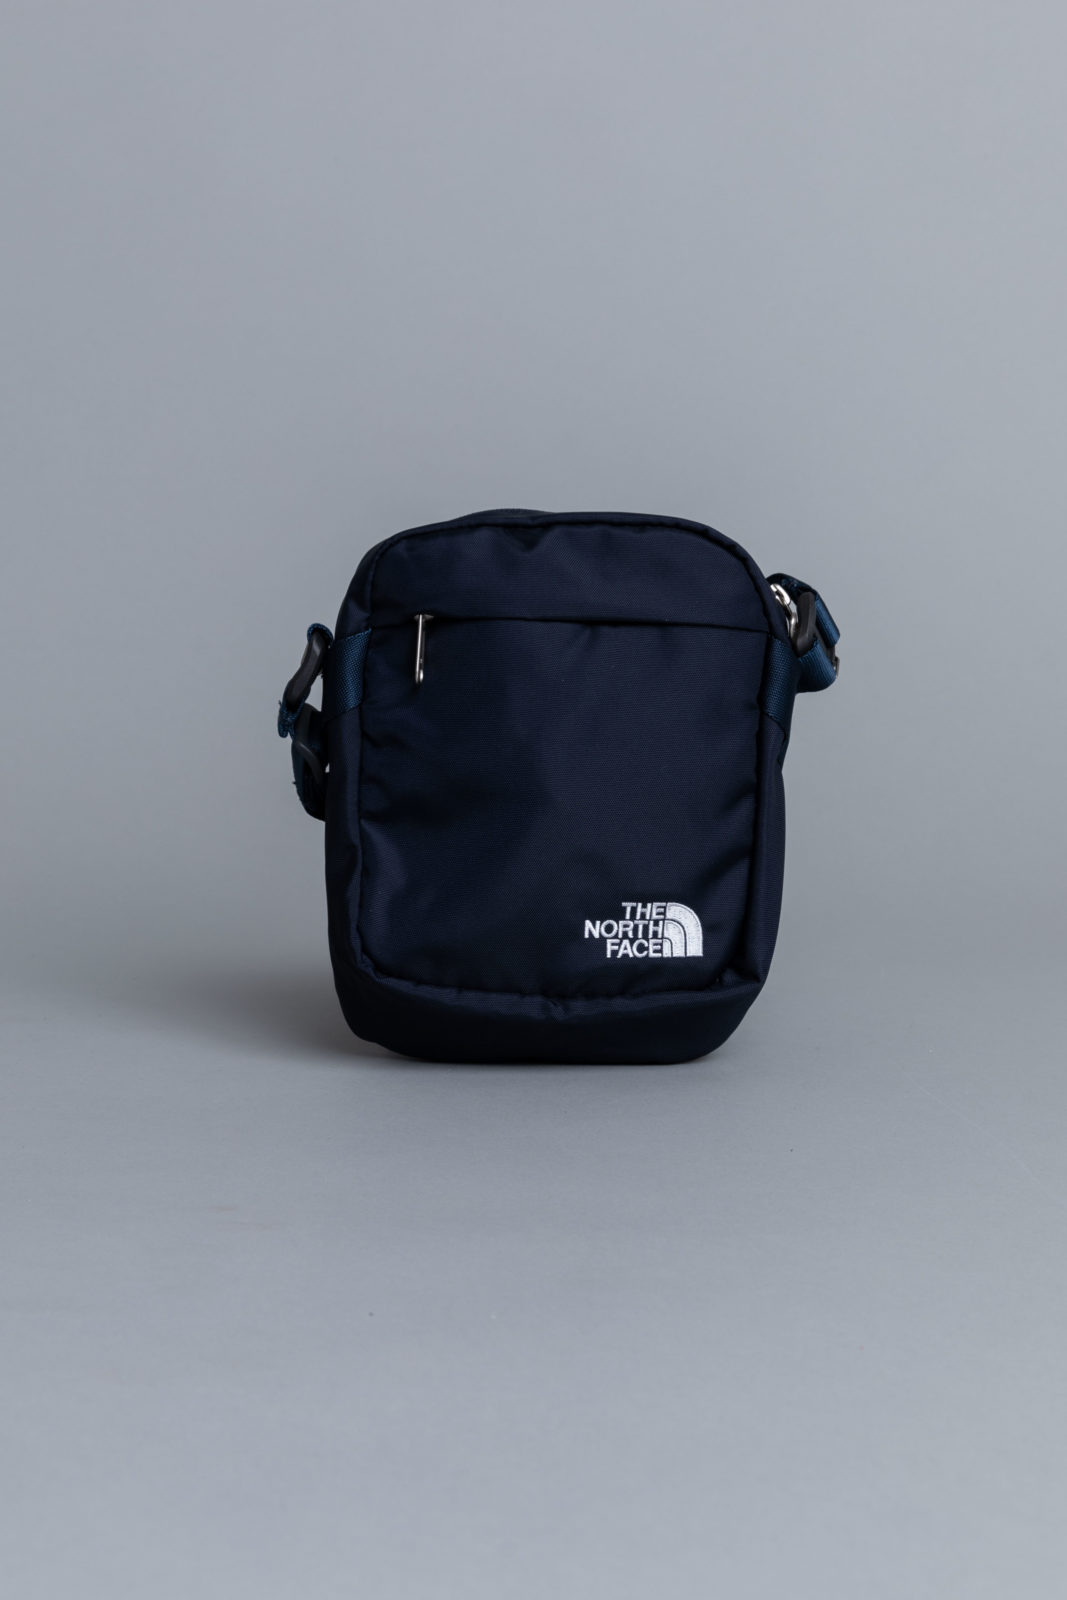 265c740d2e9aab The North Face Convertible Shoulder Bag Navy • Centreville Store